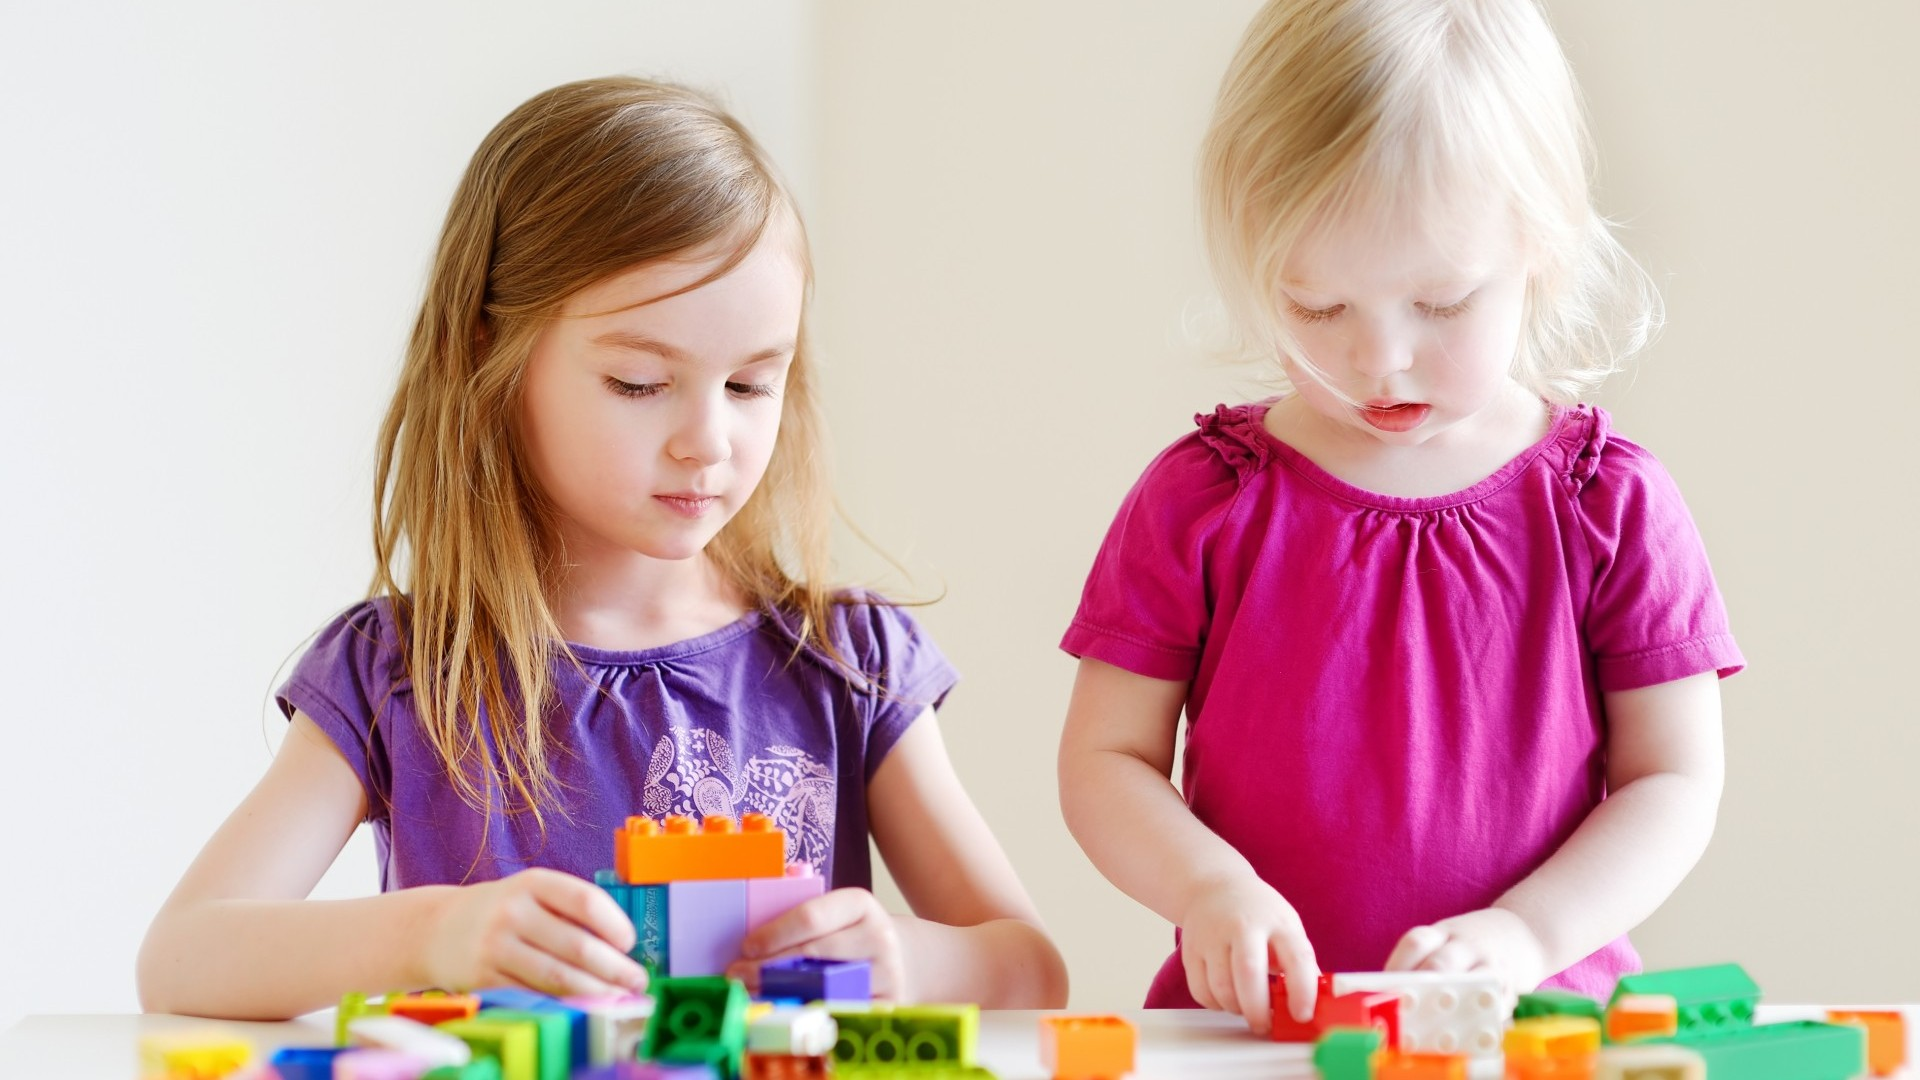 LEGO Construction Class for Early Engineers